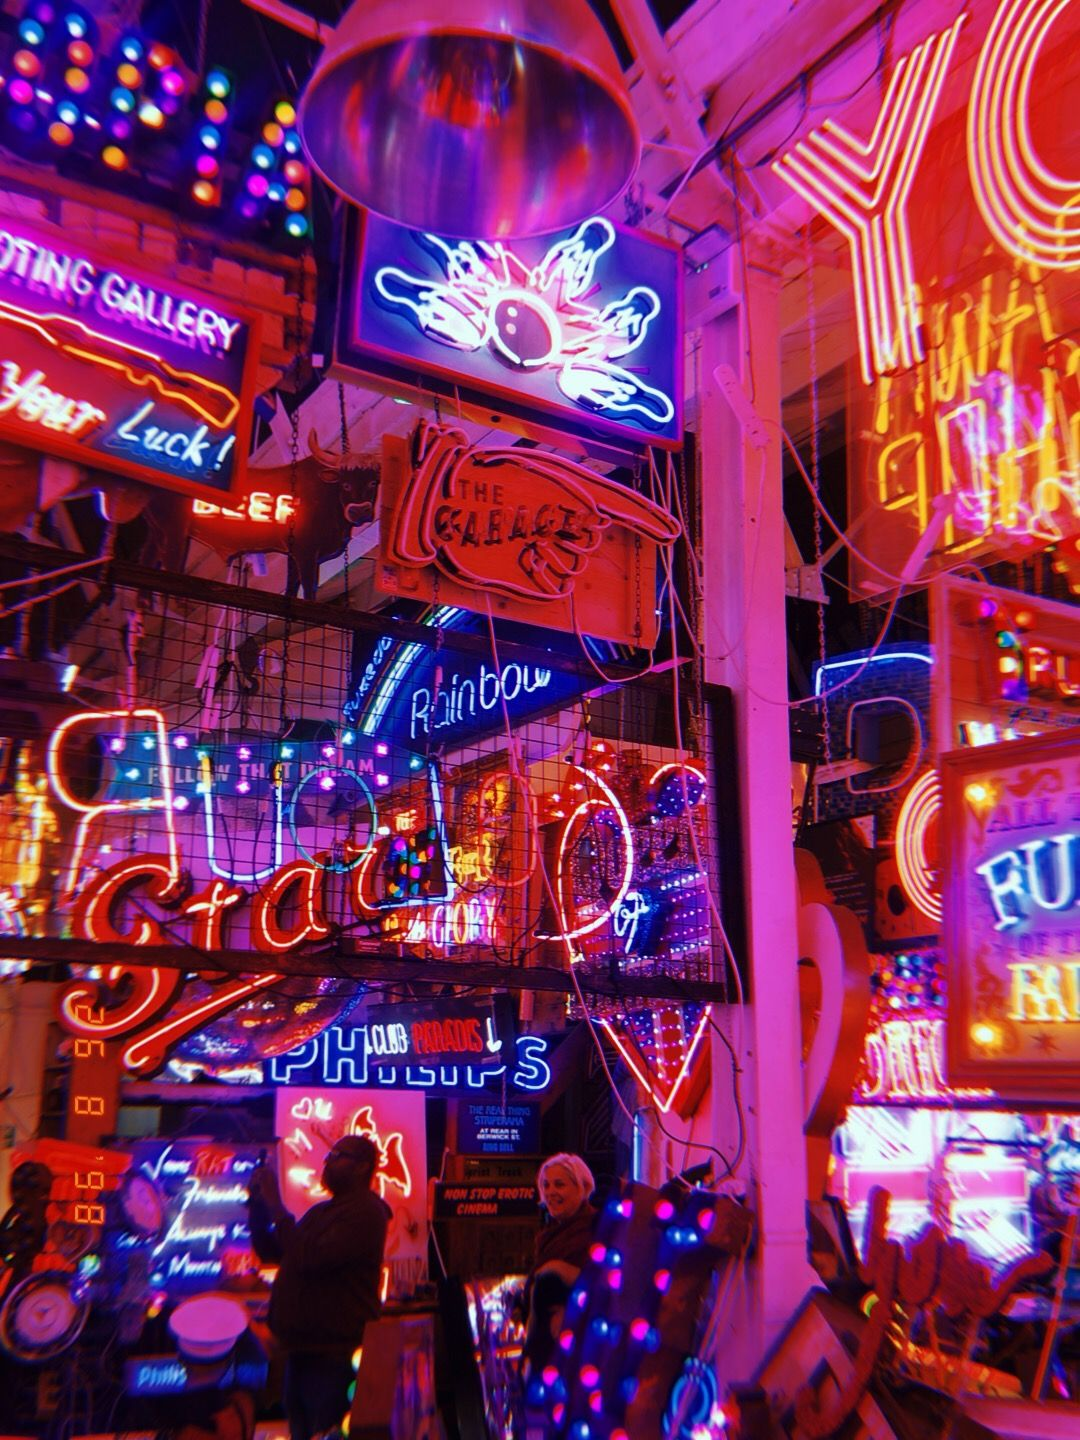 My Photograph Vintage Vibes Aesthetic Neon Signs